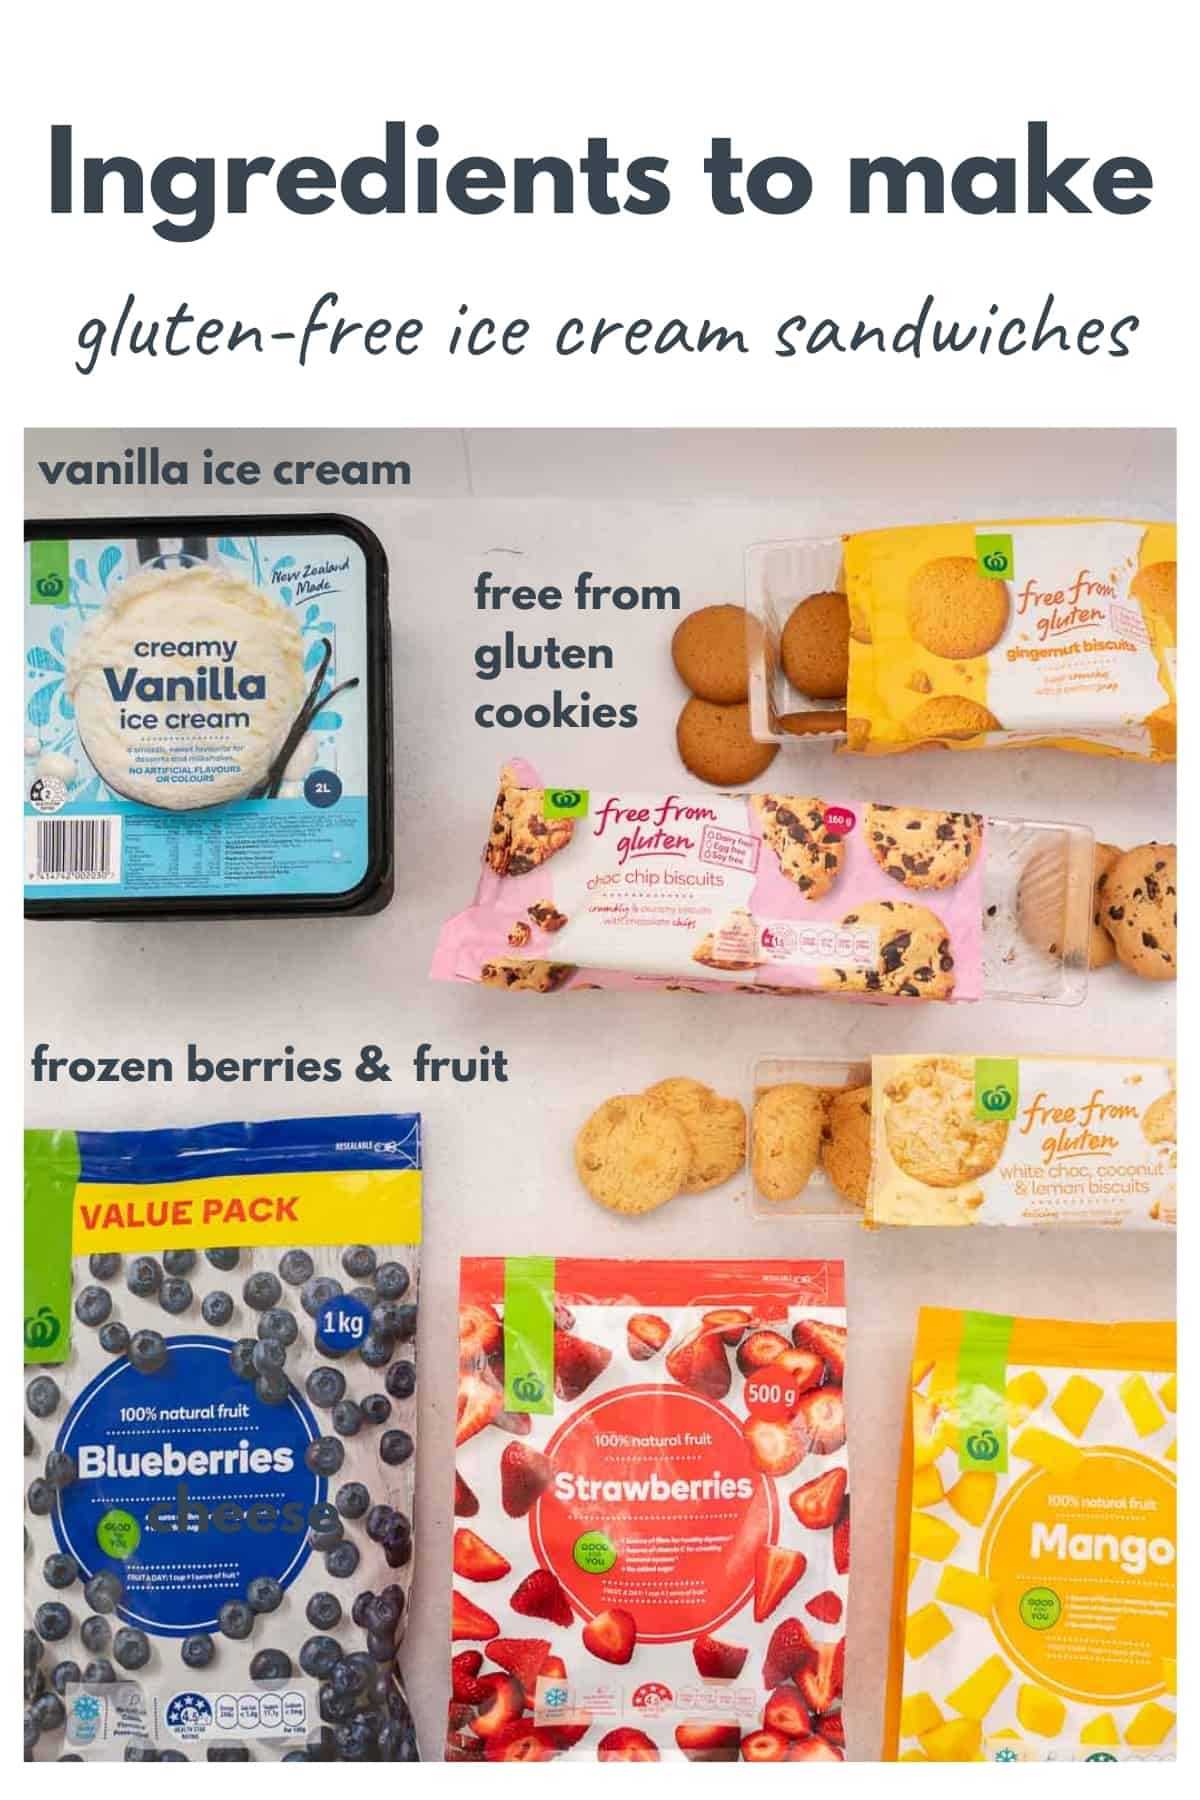 The ingredients to make gluten-free ice cream sandwiches laid out on a bench top with text overlay.